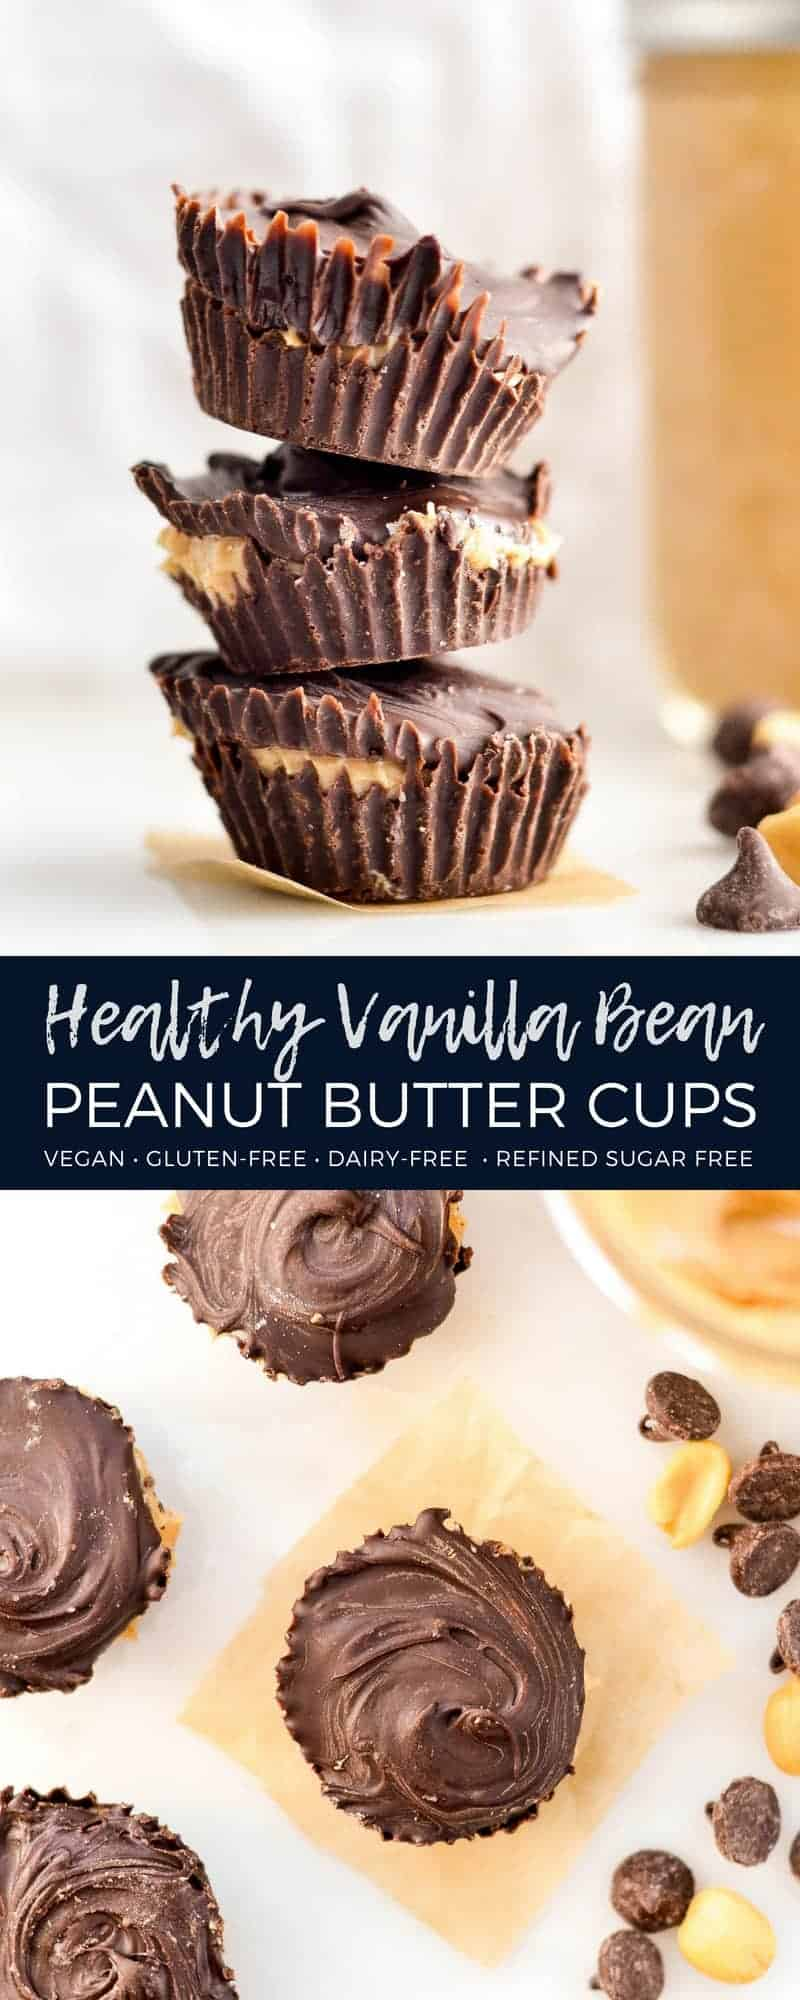 Healthy Homemade Peanut Butter Cups! An easy, two ingredient recipe for chocolate & peanut butter lovers everywhere. Gluten-free & dairy-free! #peanutbuttercups #homemade #recipe #glutenfree #dairyfree